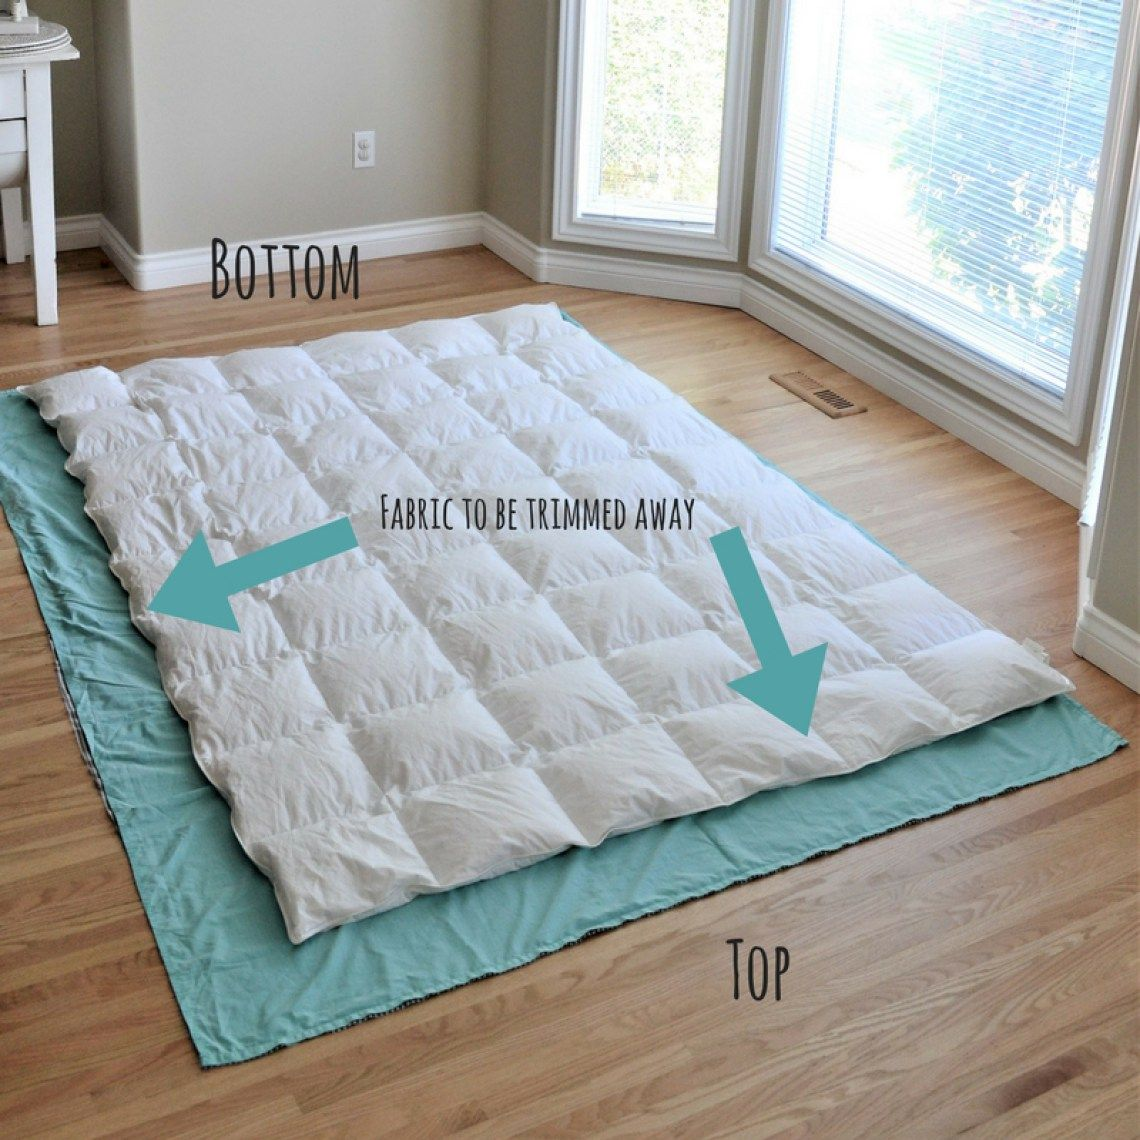 Diy Duvet Cover From Flat Sheets Tutorial Sewing